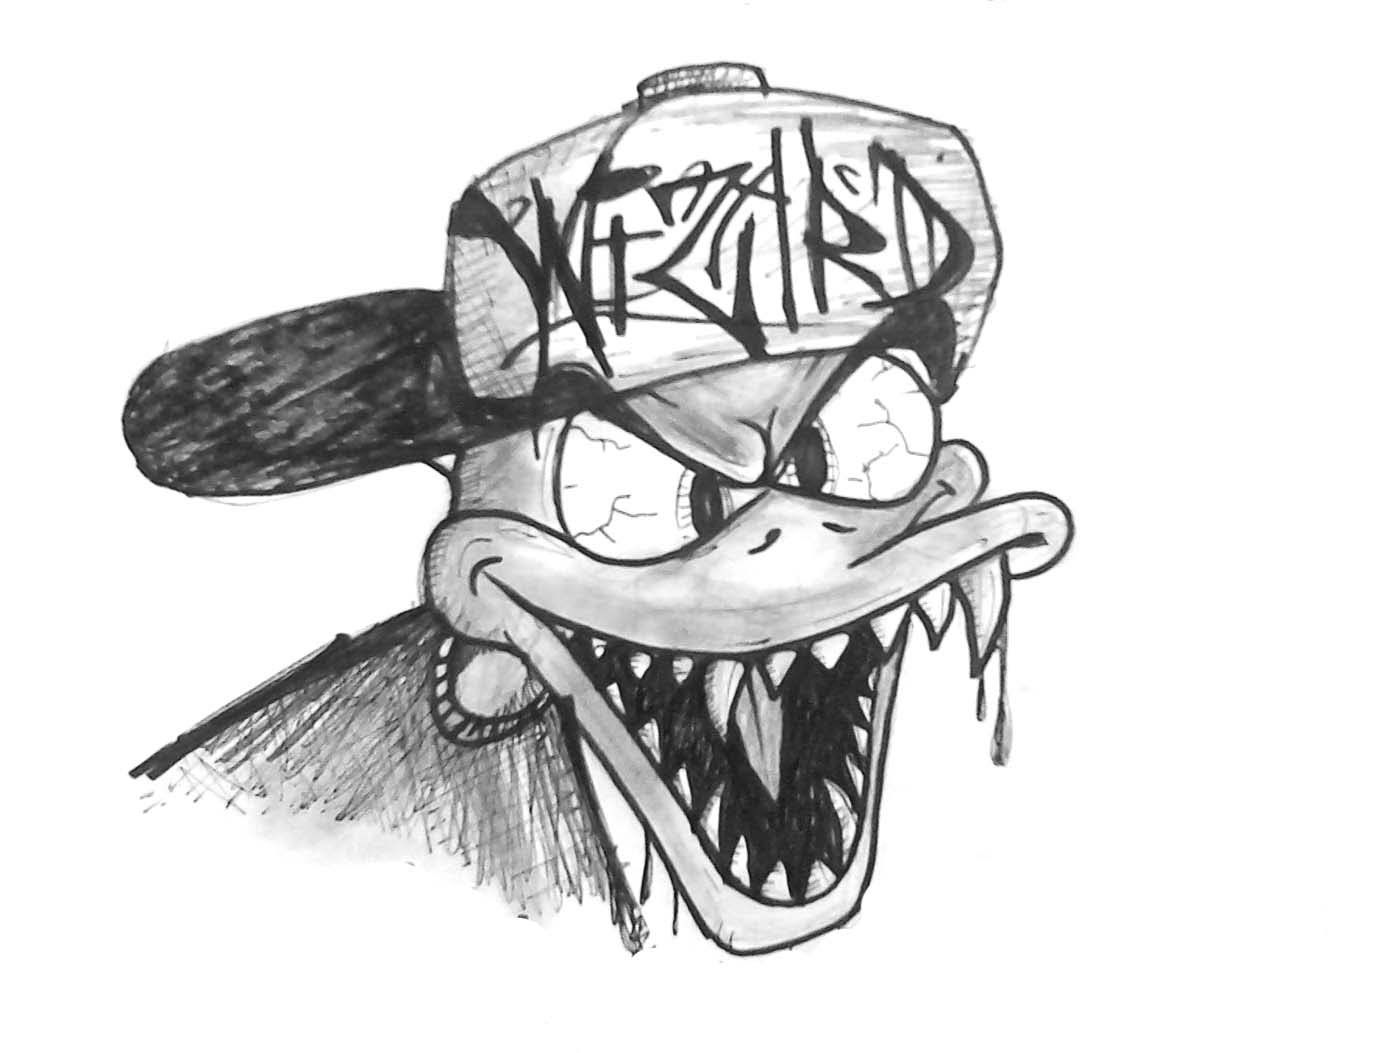 donald duck sketch speed drawing drawing a evil duck donald duck duck donald sketch